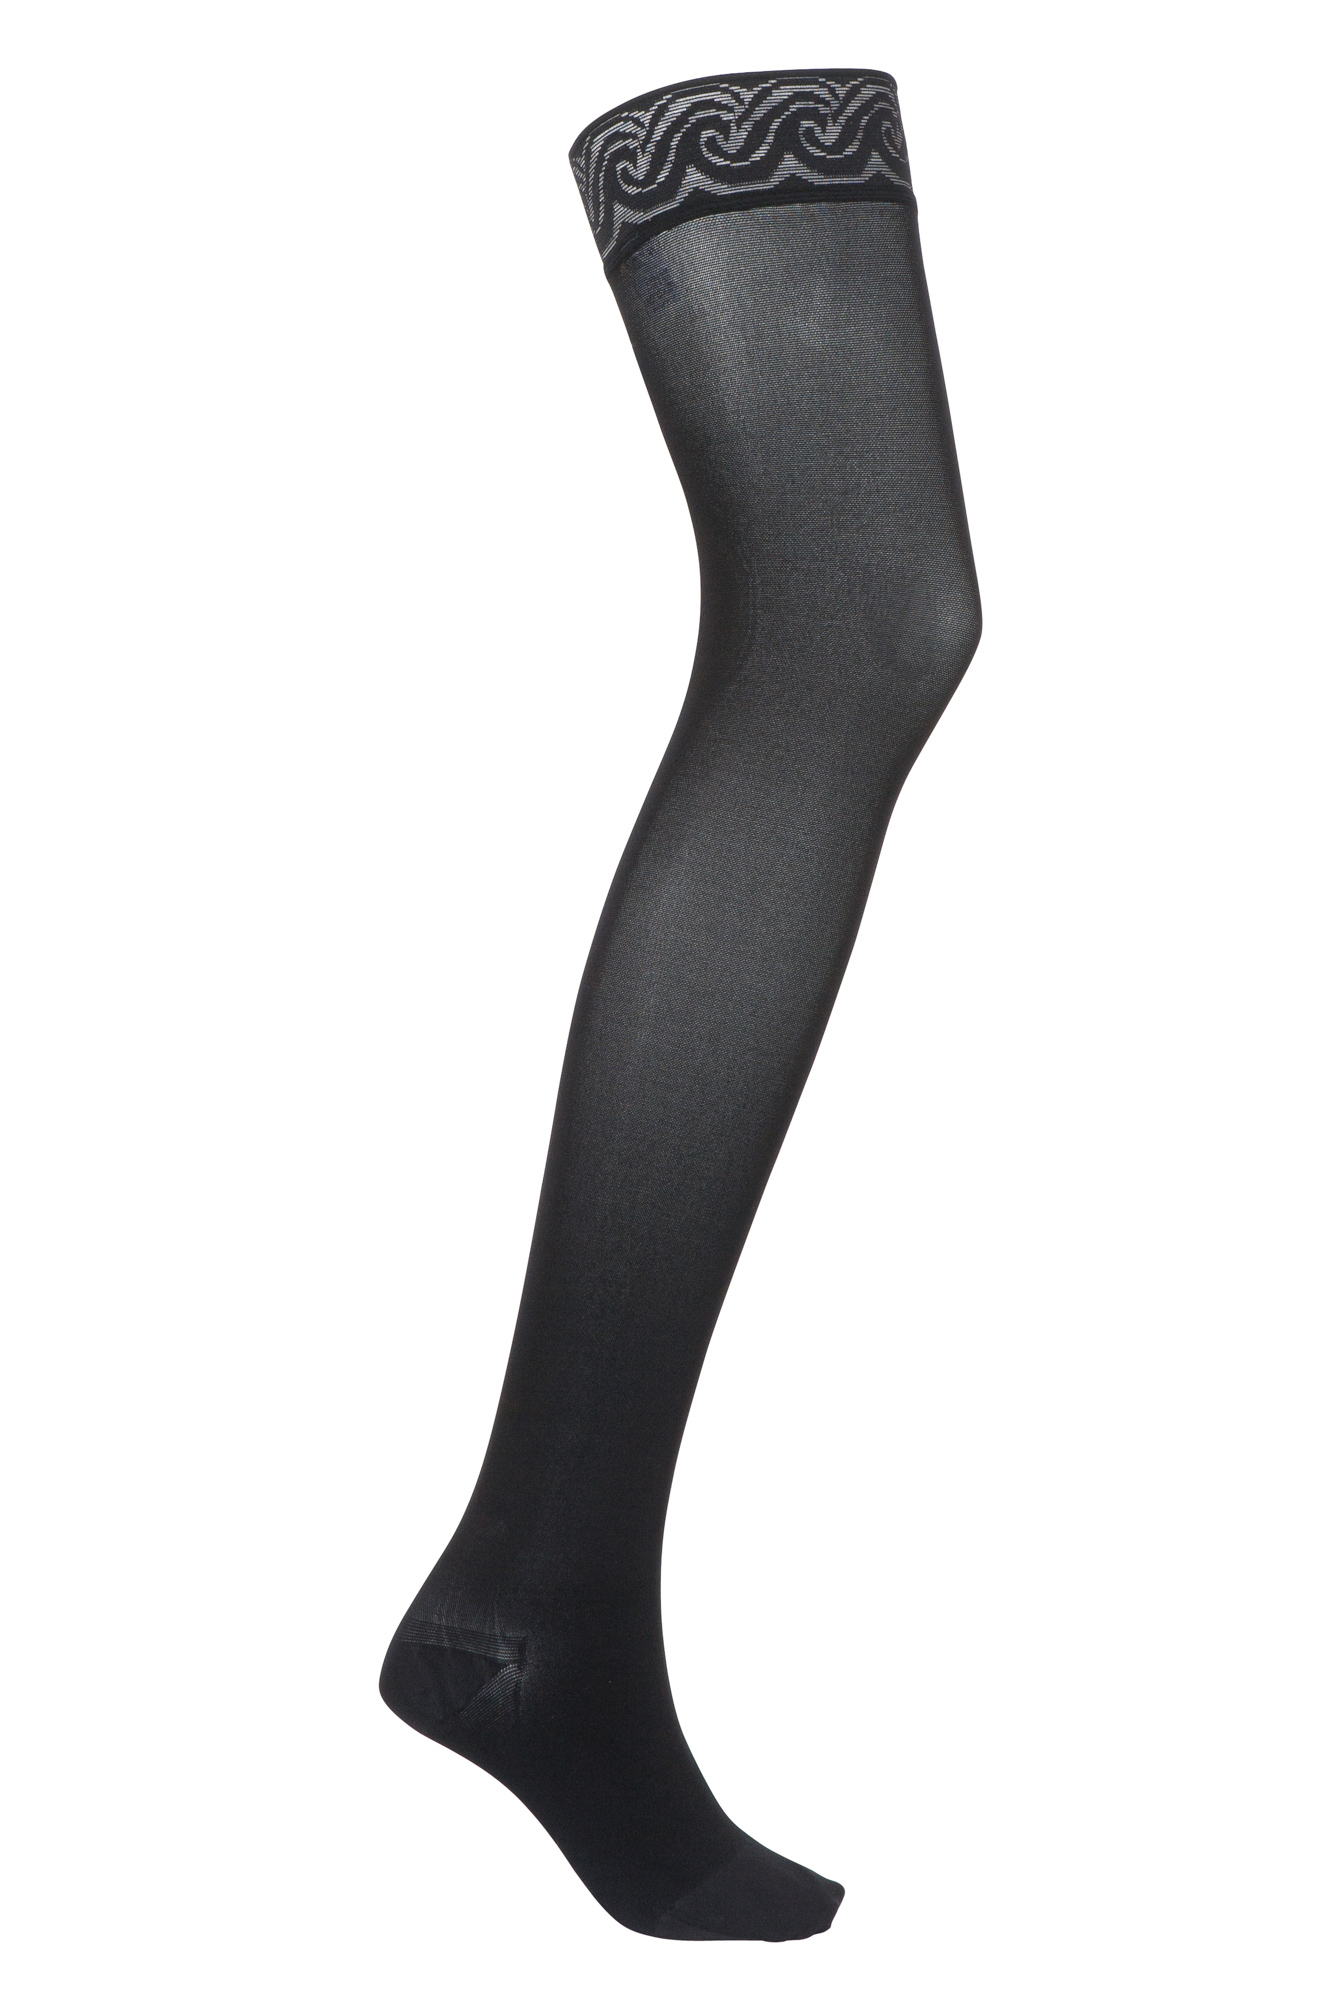 JOBST® Opaque Class 2 Thigh Hold Up Stockings with Lace Silicone Band Sand 3 Petite Closed Toe